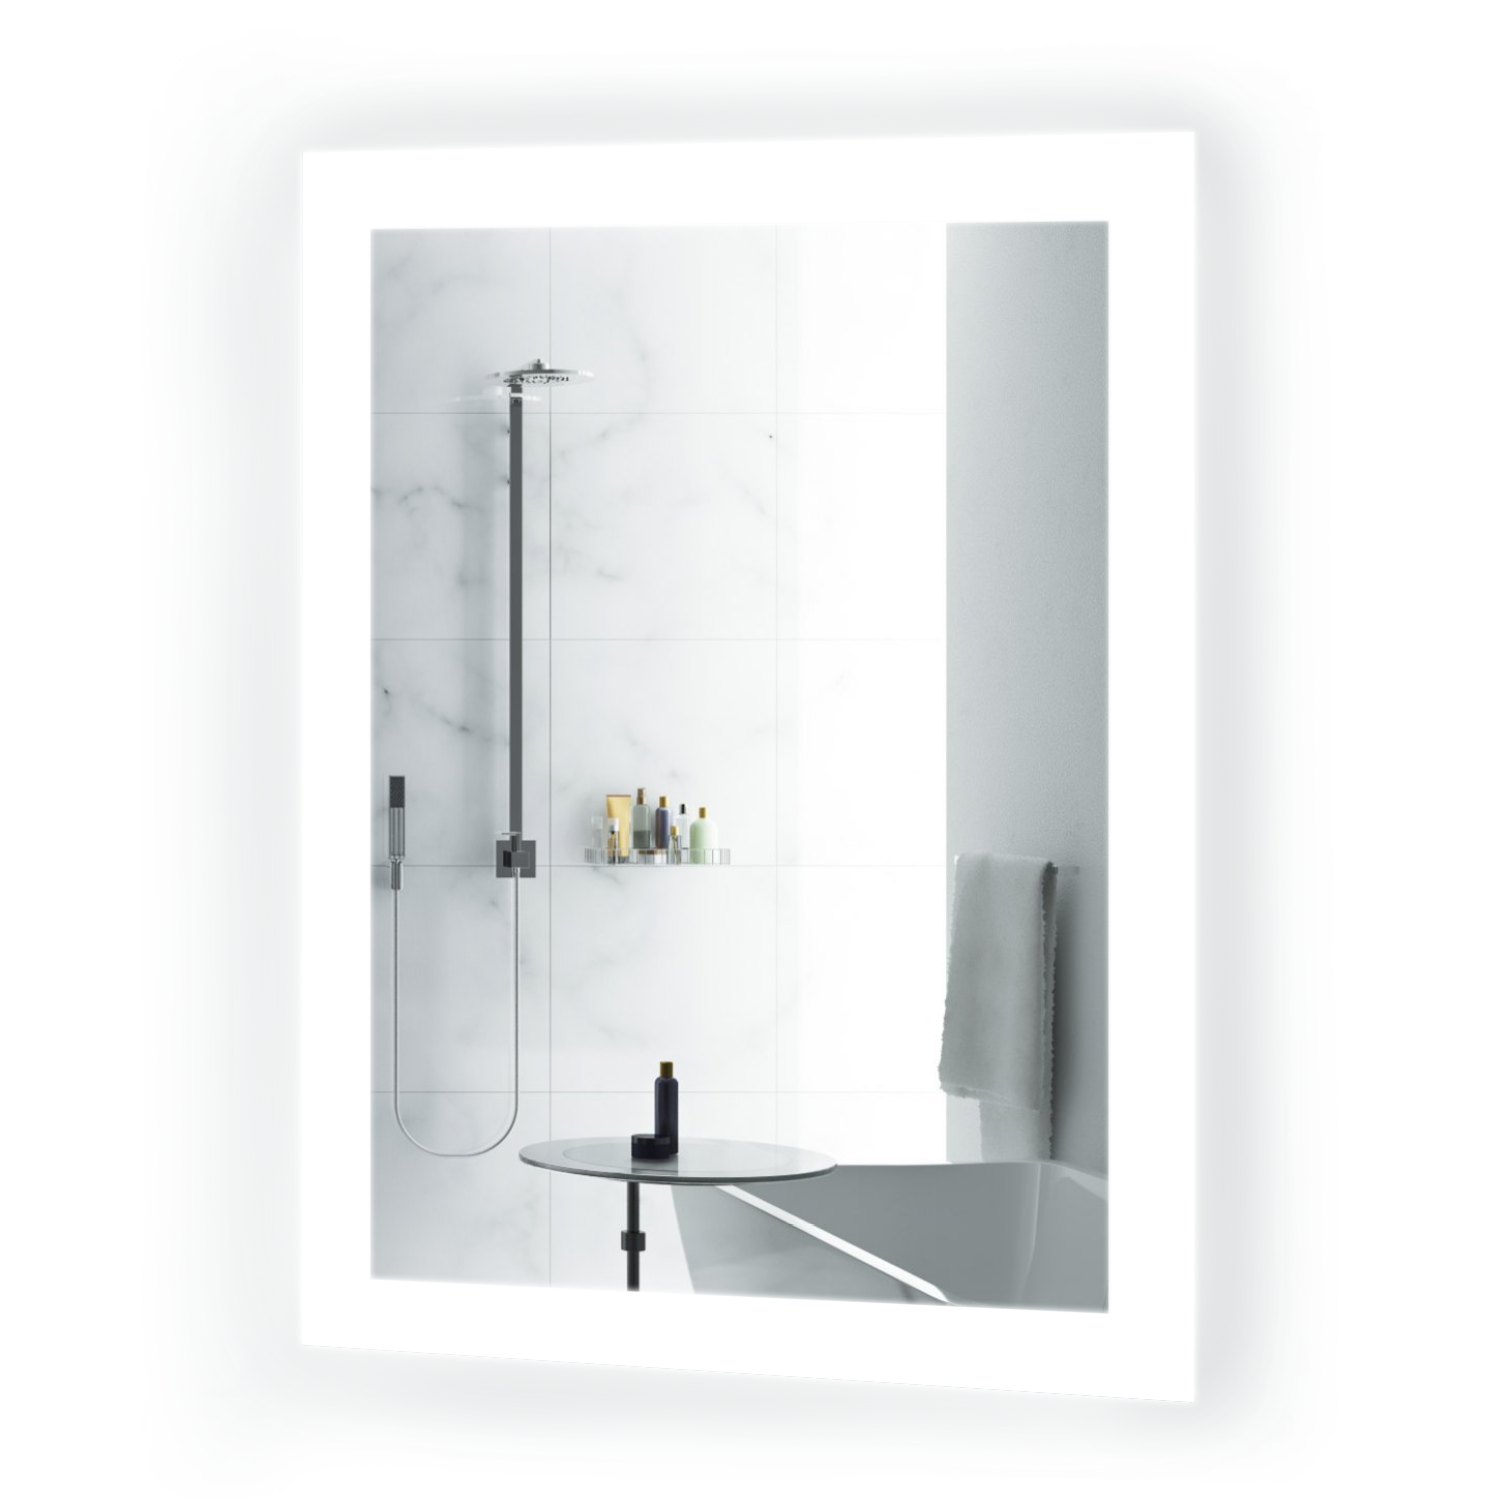 Small Vanity Mirror With Lights. Bijou Small LED Bathroom Mirror 15 Inch x 20  Lighted Vanity Includes Dimmer Defogger Wall Mount Vertical or Horizontal Installation